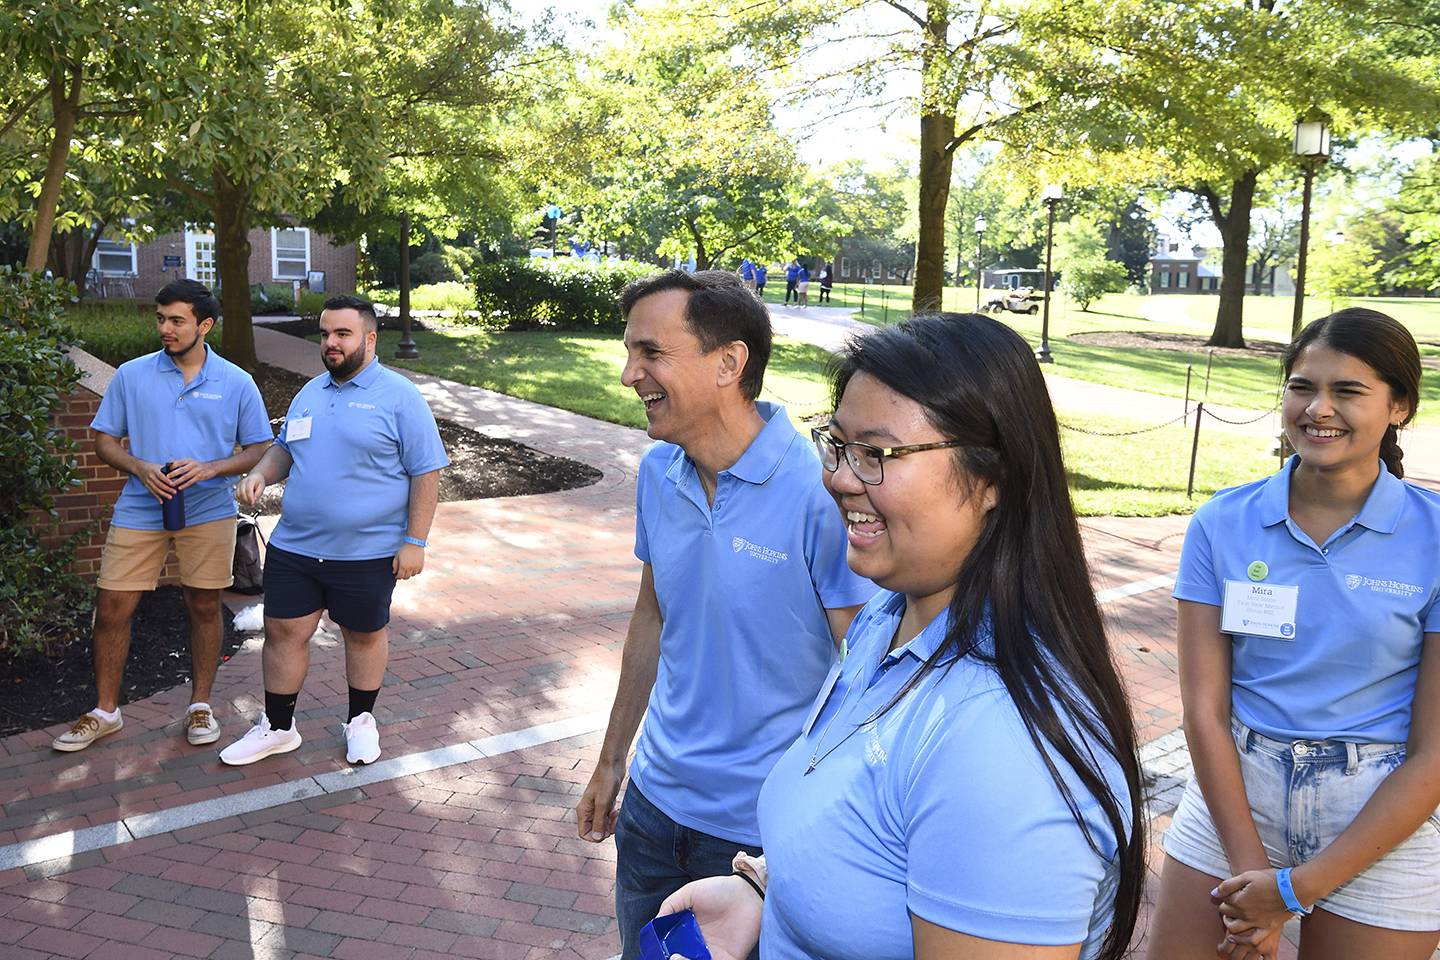 JHU President Ronald J. Daniels helps greet new students